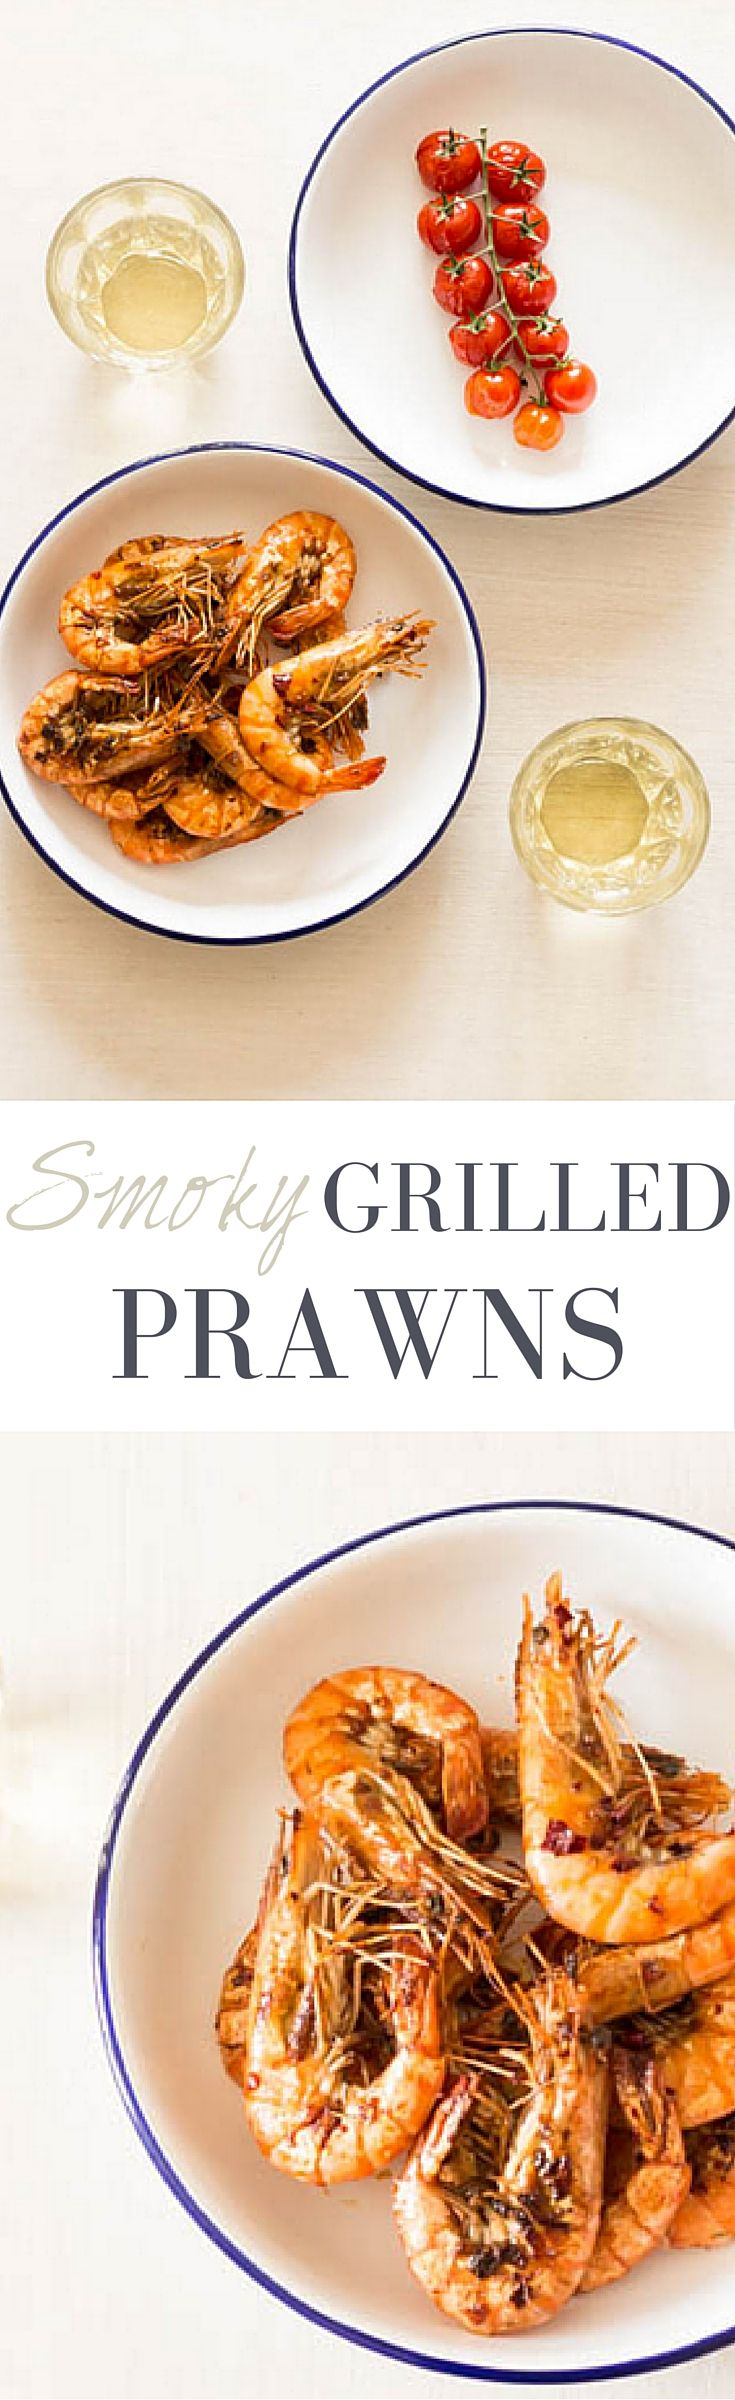 Smoky Grilled Prawns | Recipes From A Pantry